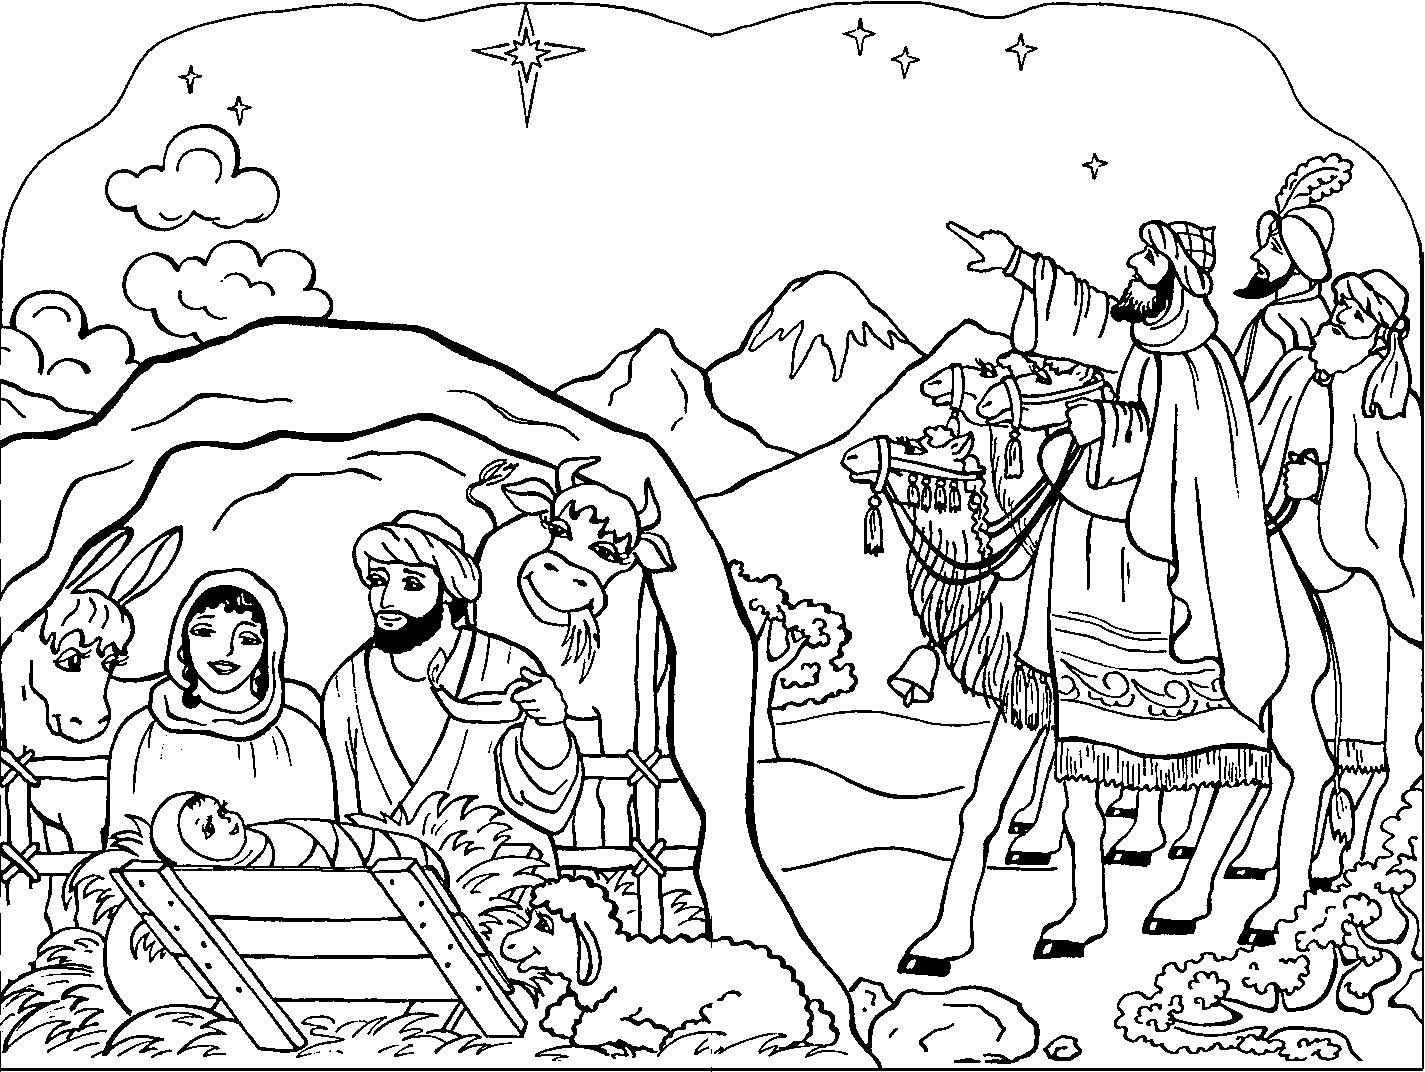 Christian Coloring Pages For Kids Christmas Nativity Coloring Jesus Coloring Pages Nativity Coloring Pages